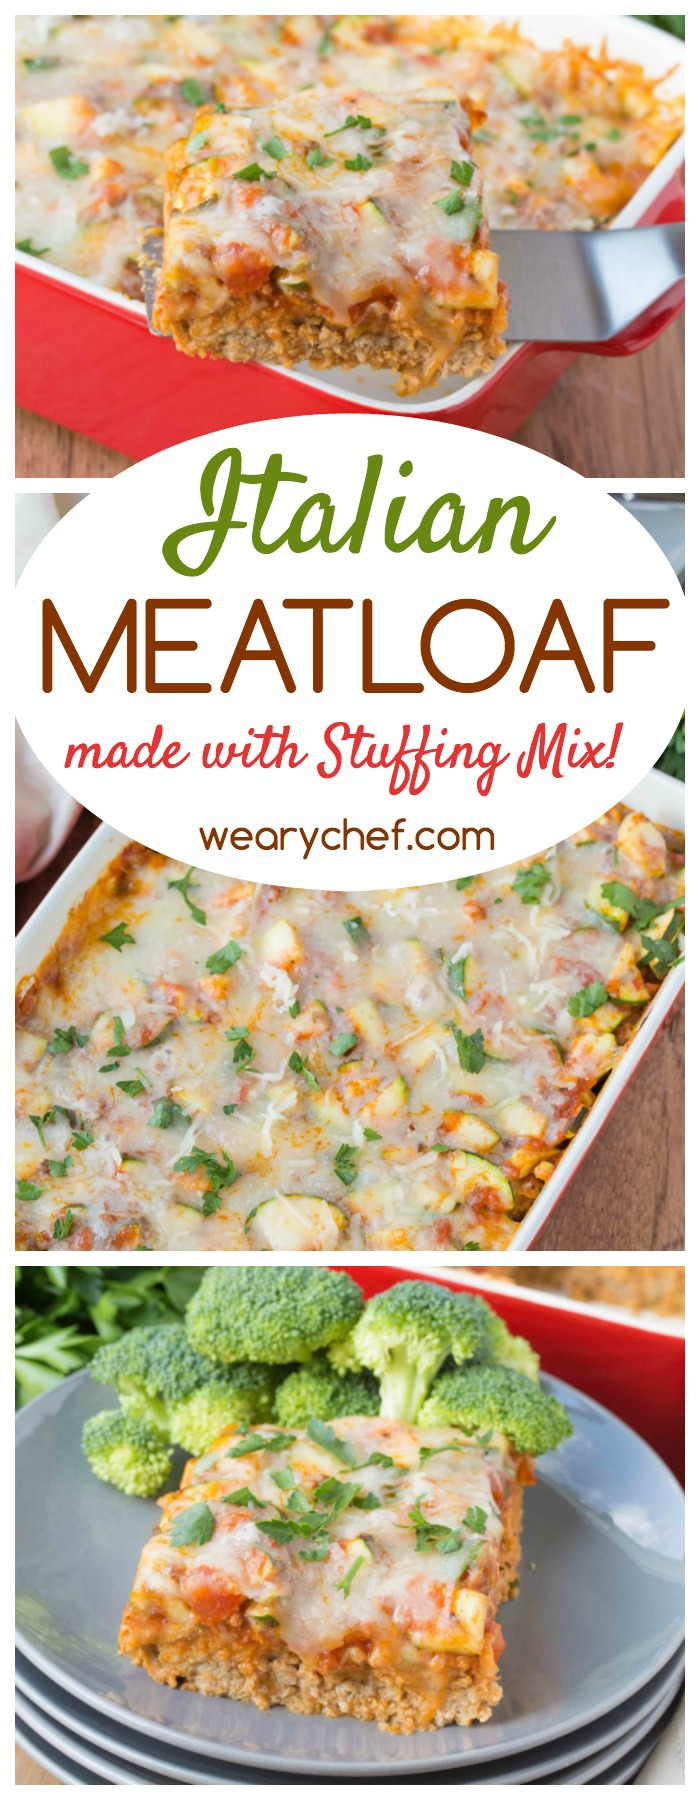 stove-top-stuffing-meatloaf-collage